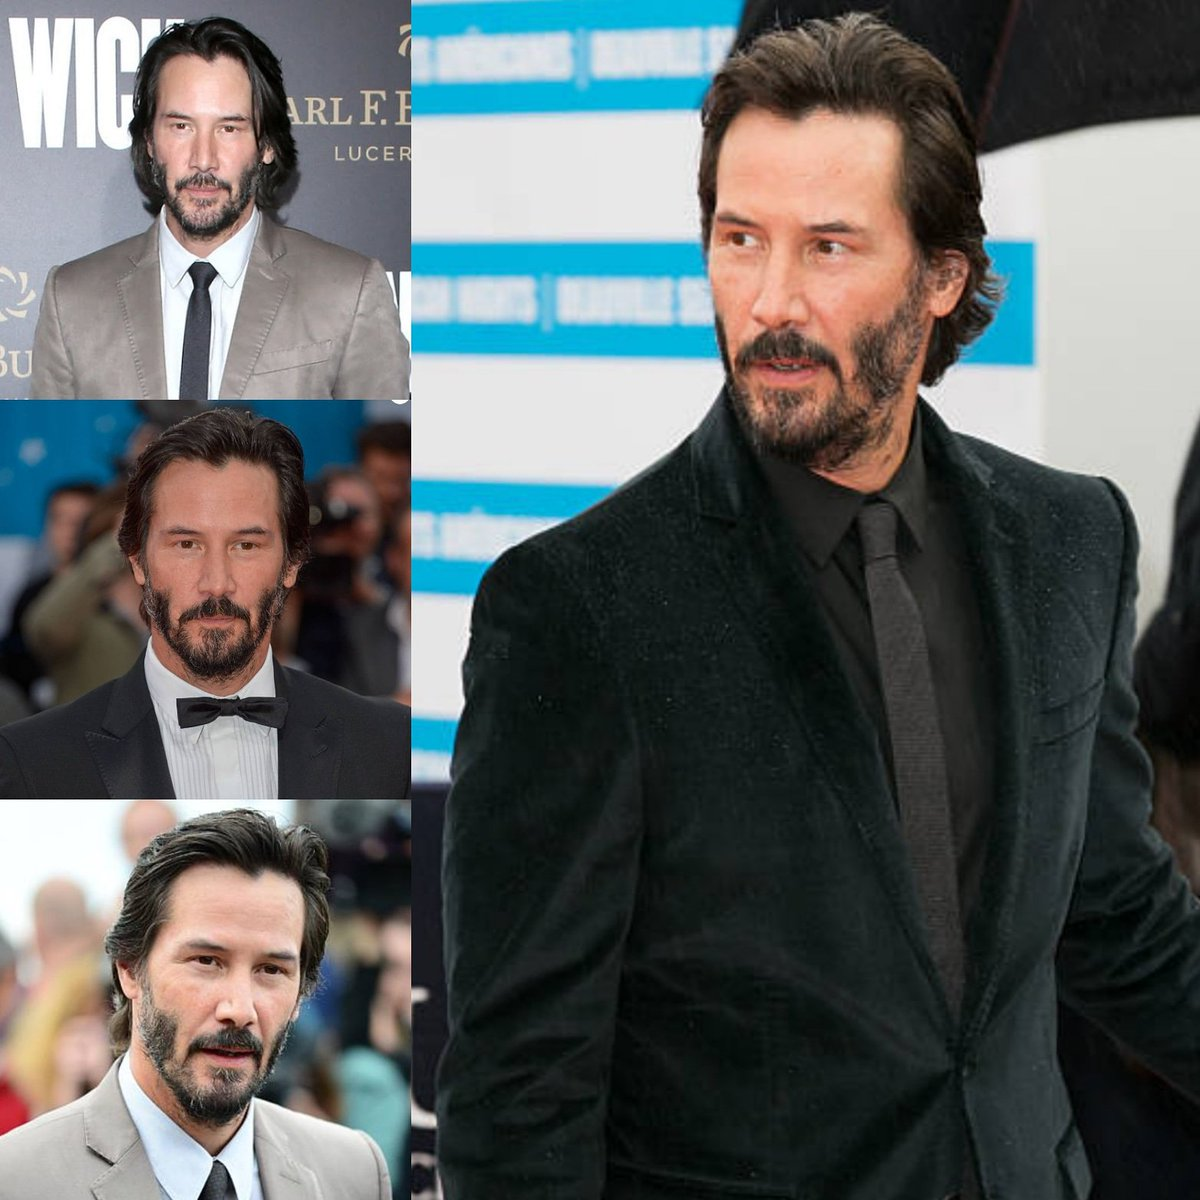 Short hair... Handsome... Just Keanu Reeves  - Sept 2015 & Feb 2017 (top left)   #keanureeves #handsome #hairstyle #manofstyle #johnwick2 #premiere #losangeles #KnockKnock #americanfilmfestival #Deauville #France #suit #tuxedopic.twitter.com/MeCP3geKZF